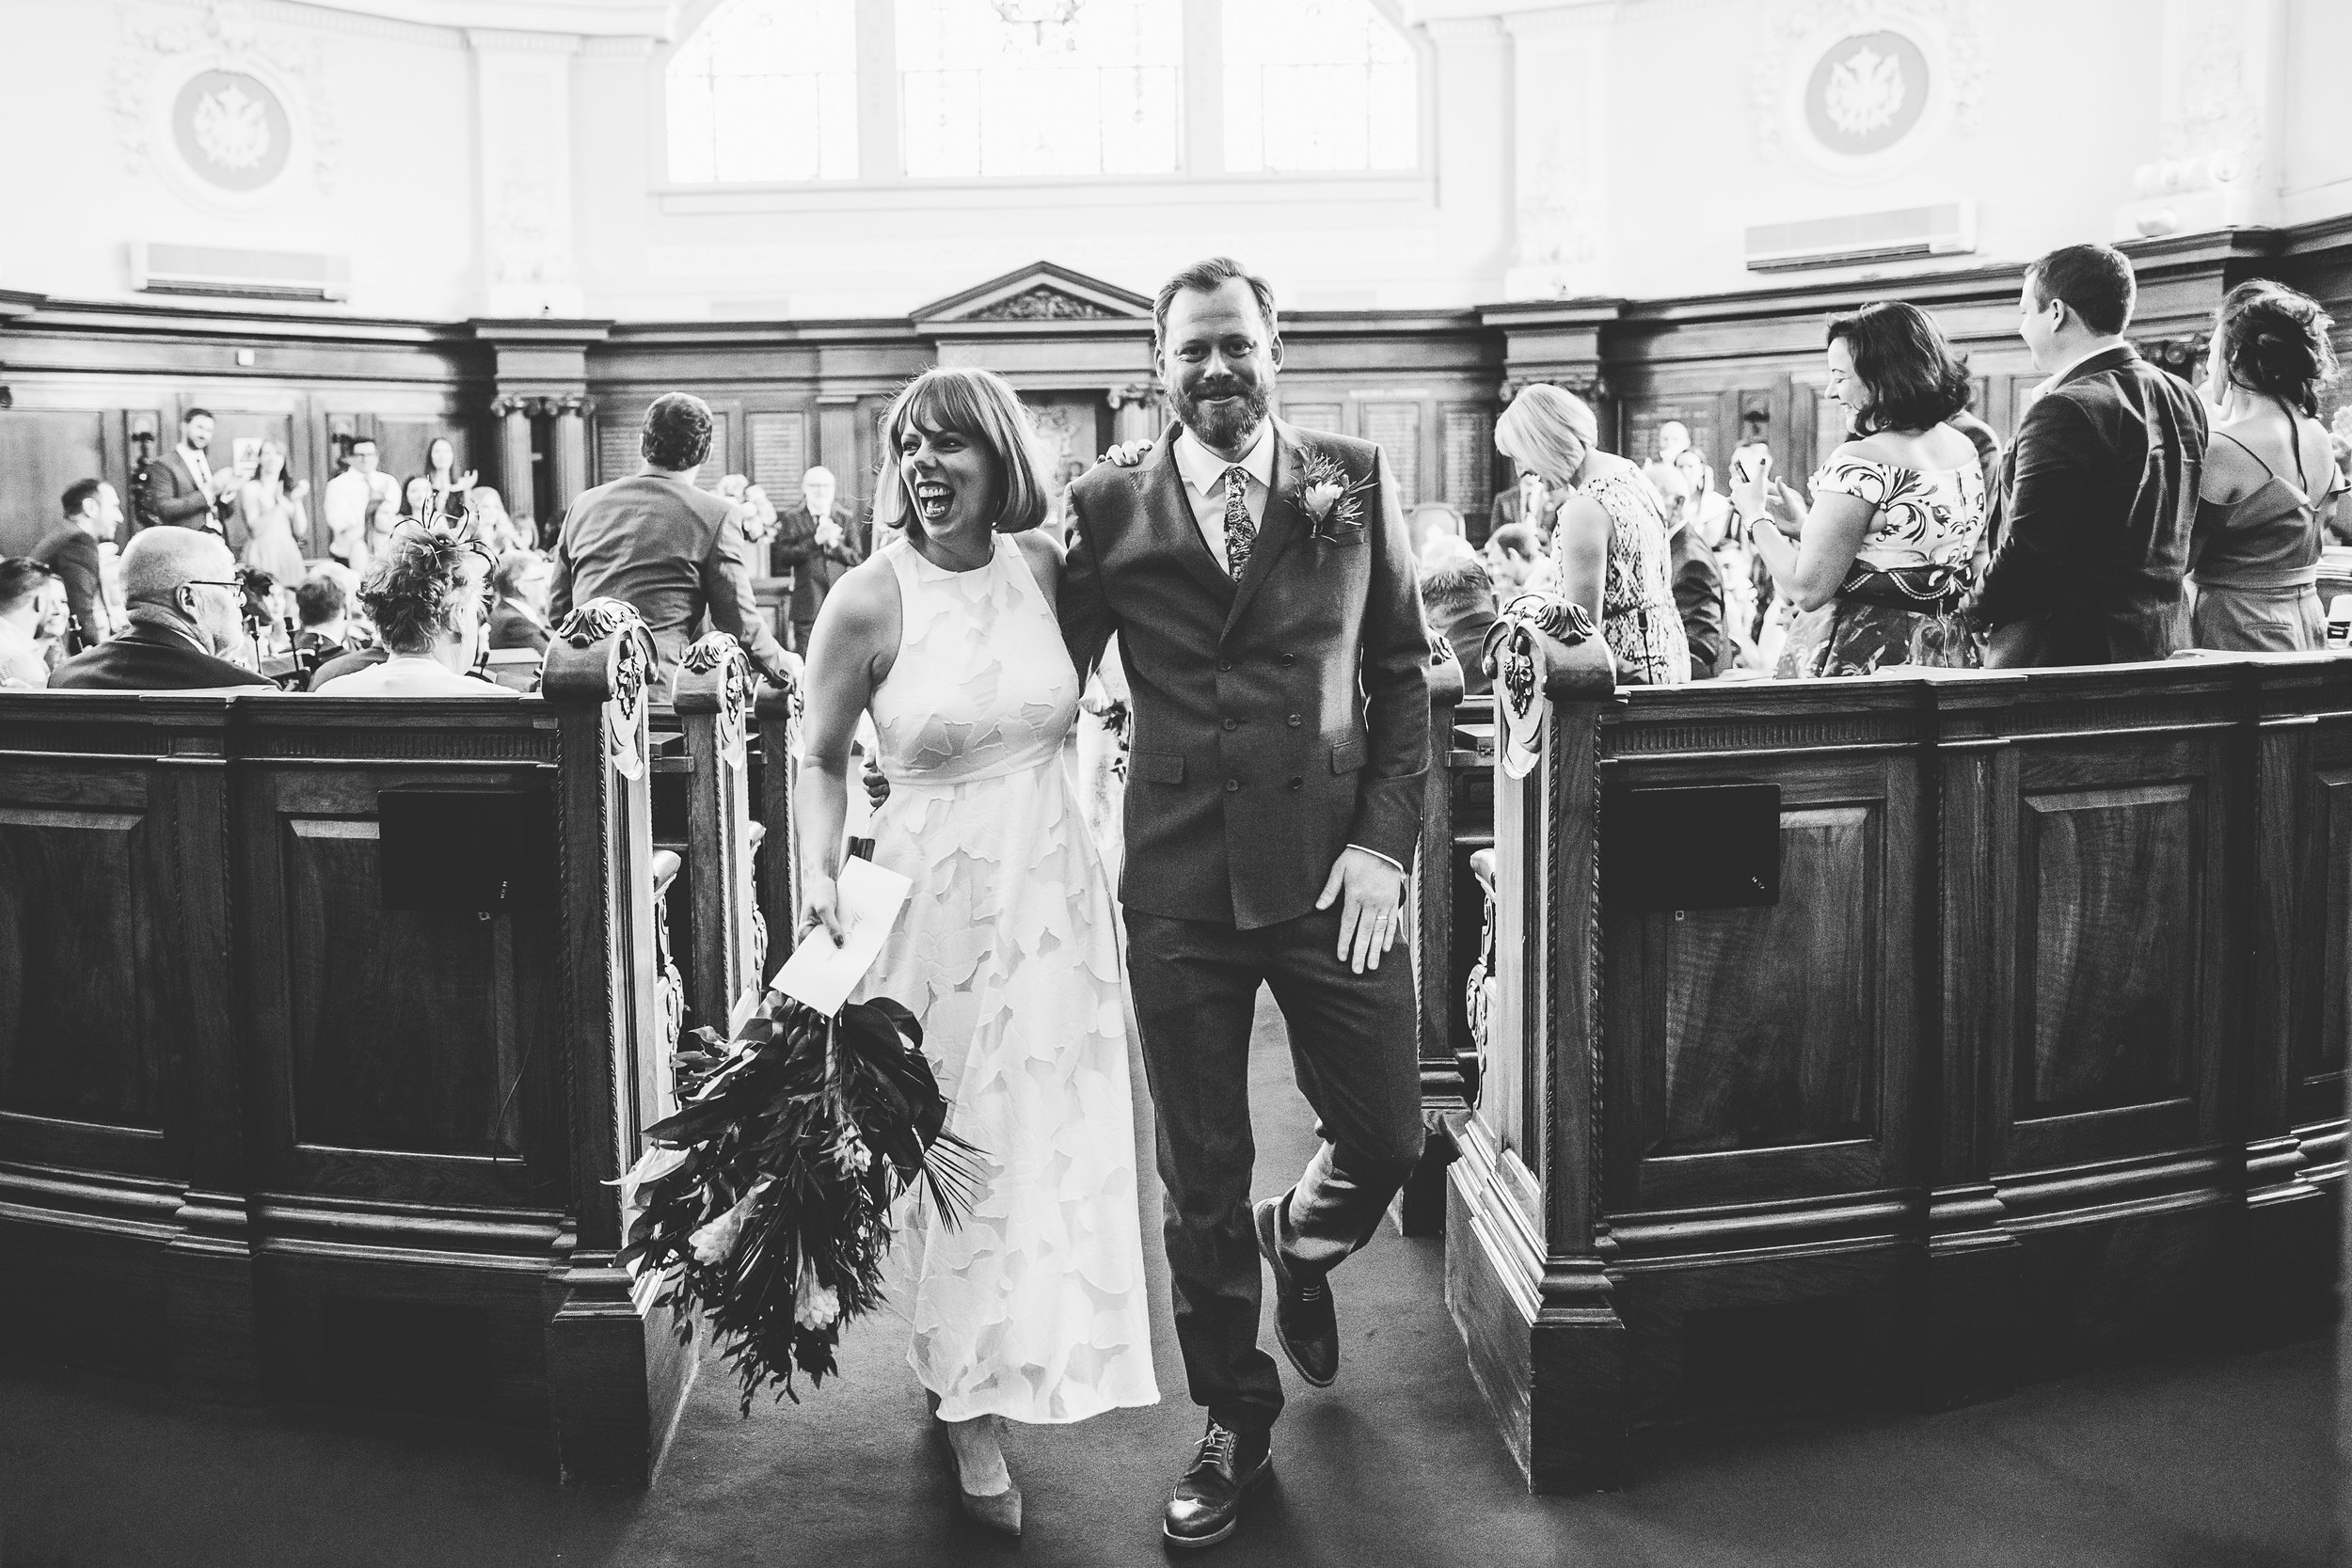 Islington_Town_Hall_Wedding_27.JPG